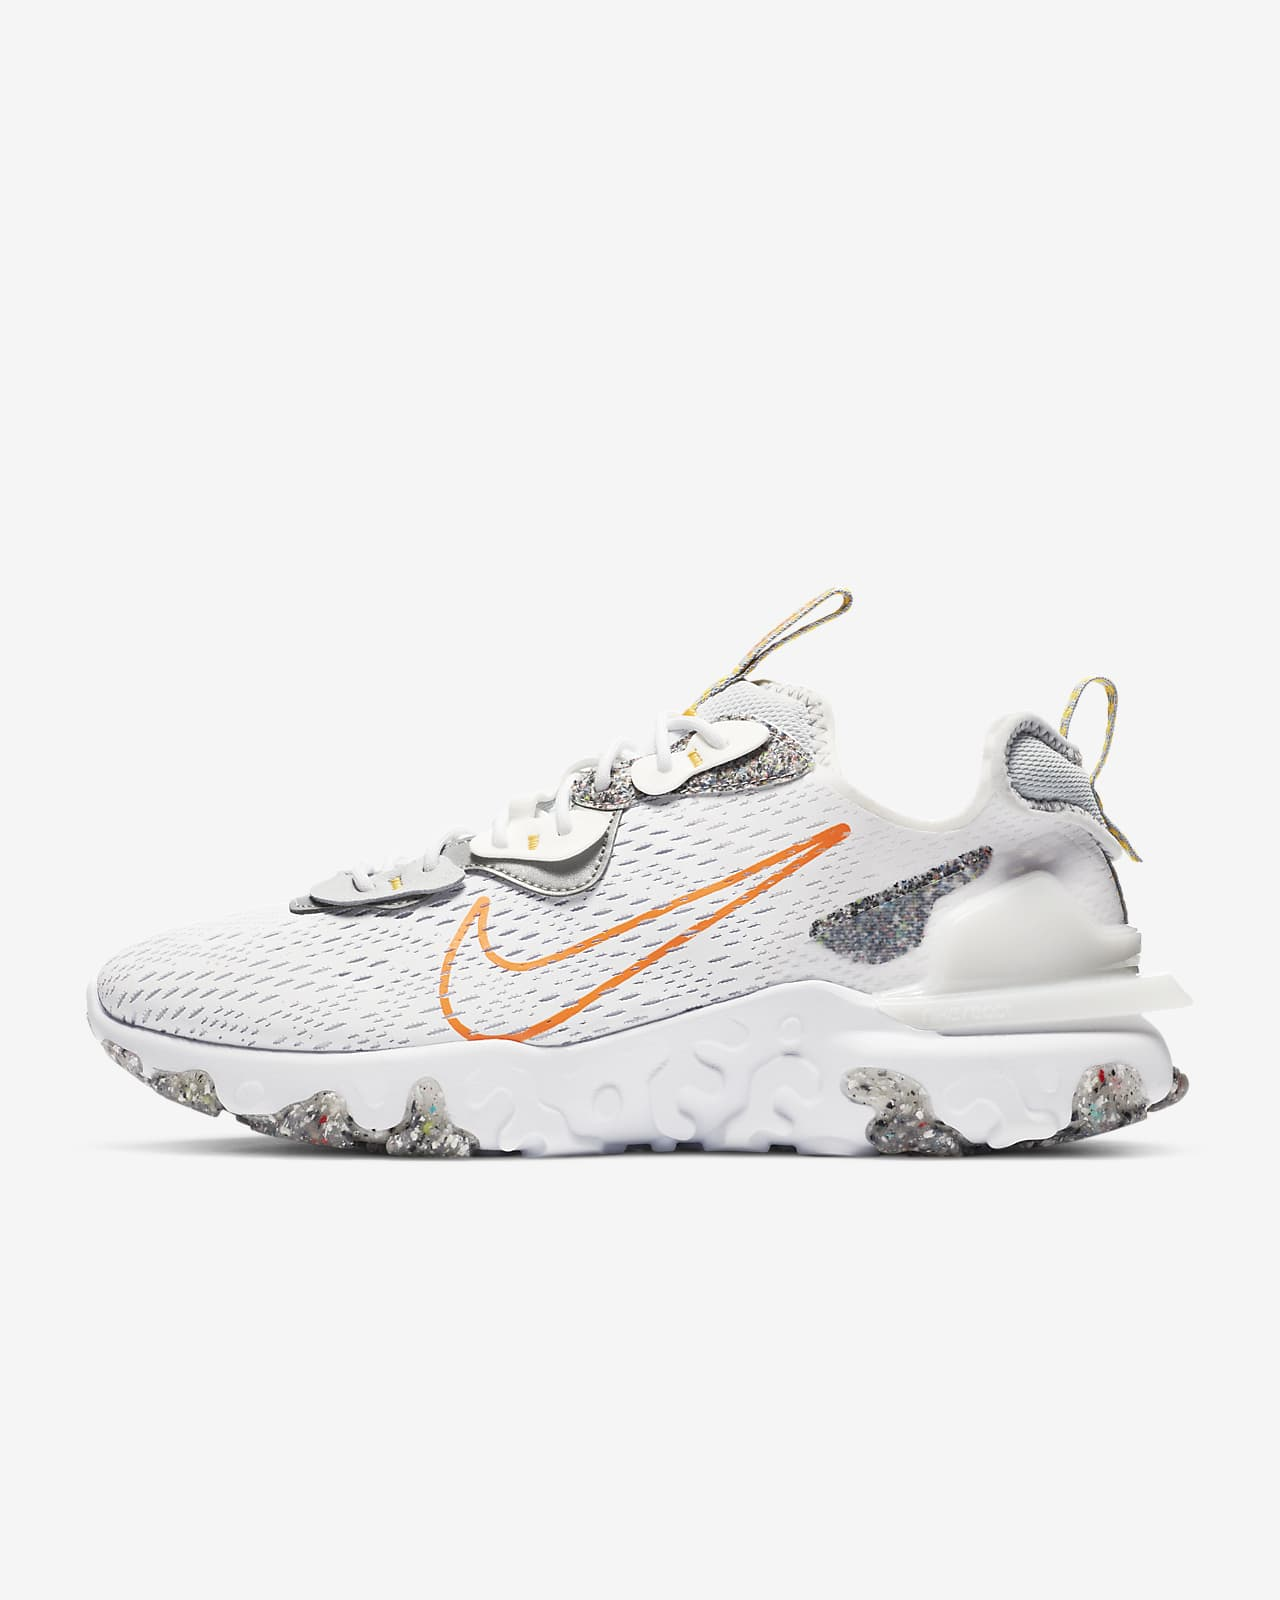 Soldes > chaussure nike react vision > en stock